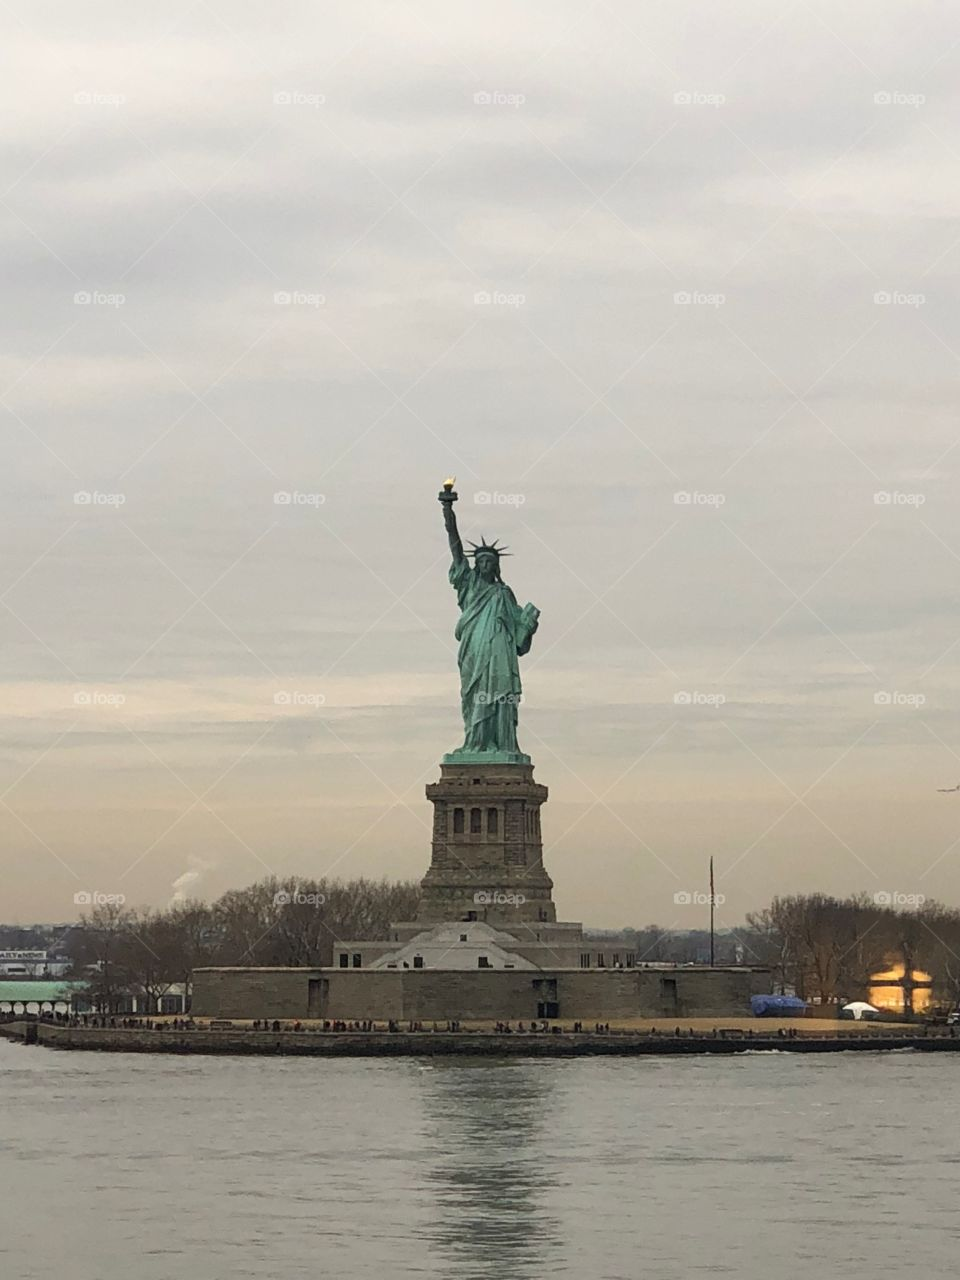 The lady her self a gift from France to the Americans , doesn't disappoint but is really small.